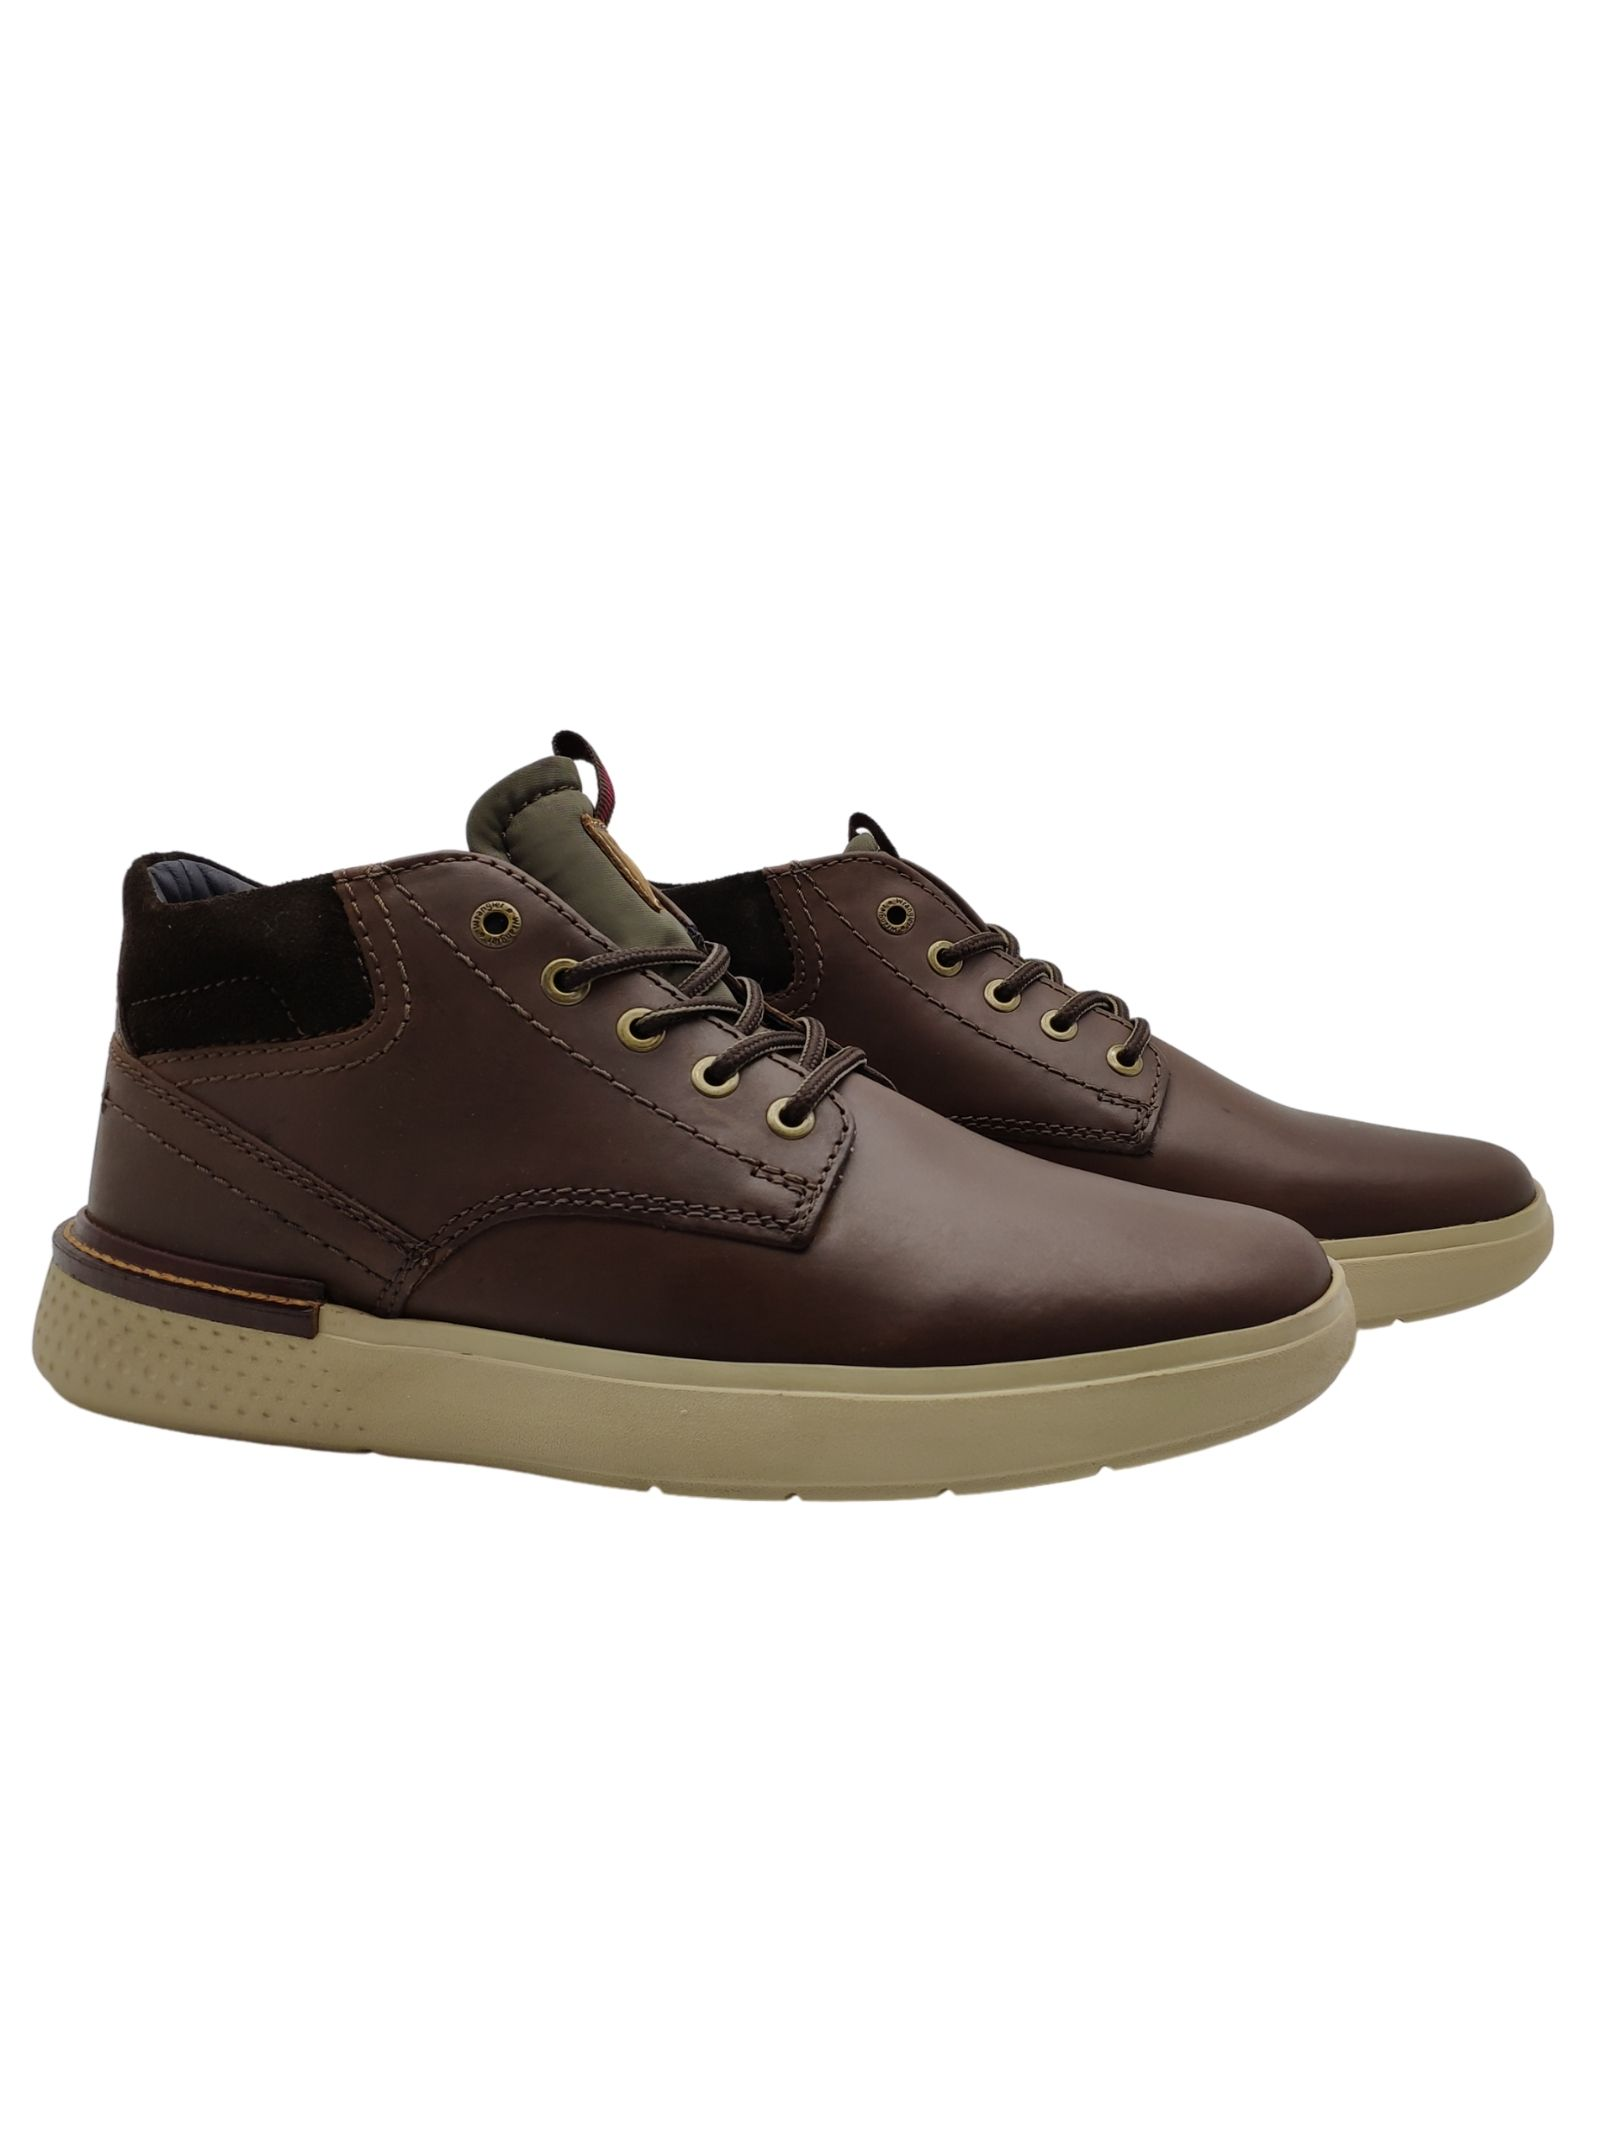 Discovery Ankle Men's Ankle Boots Wrangler | Ankle Boots | WM02035A030